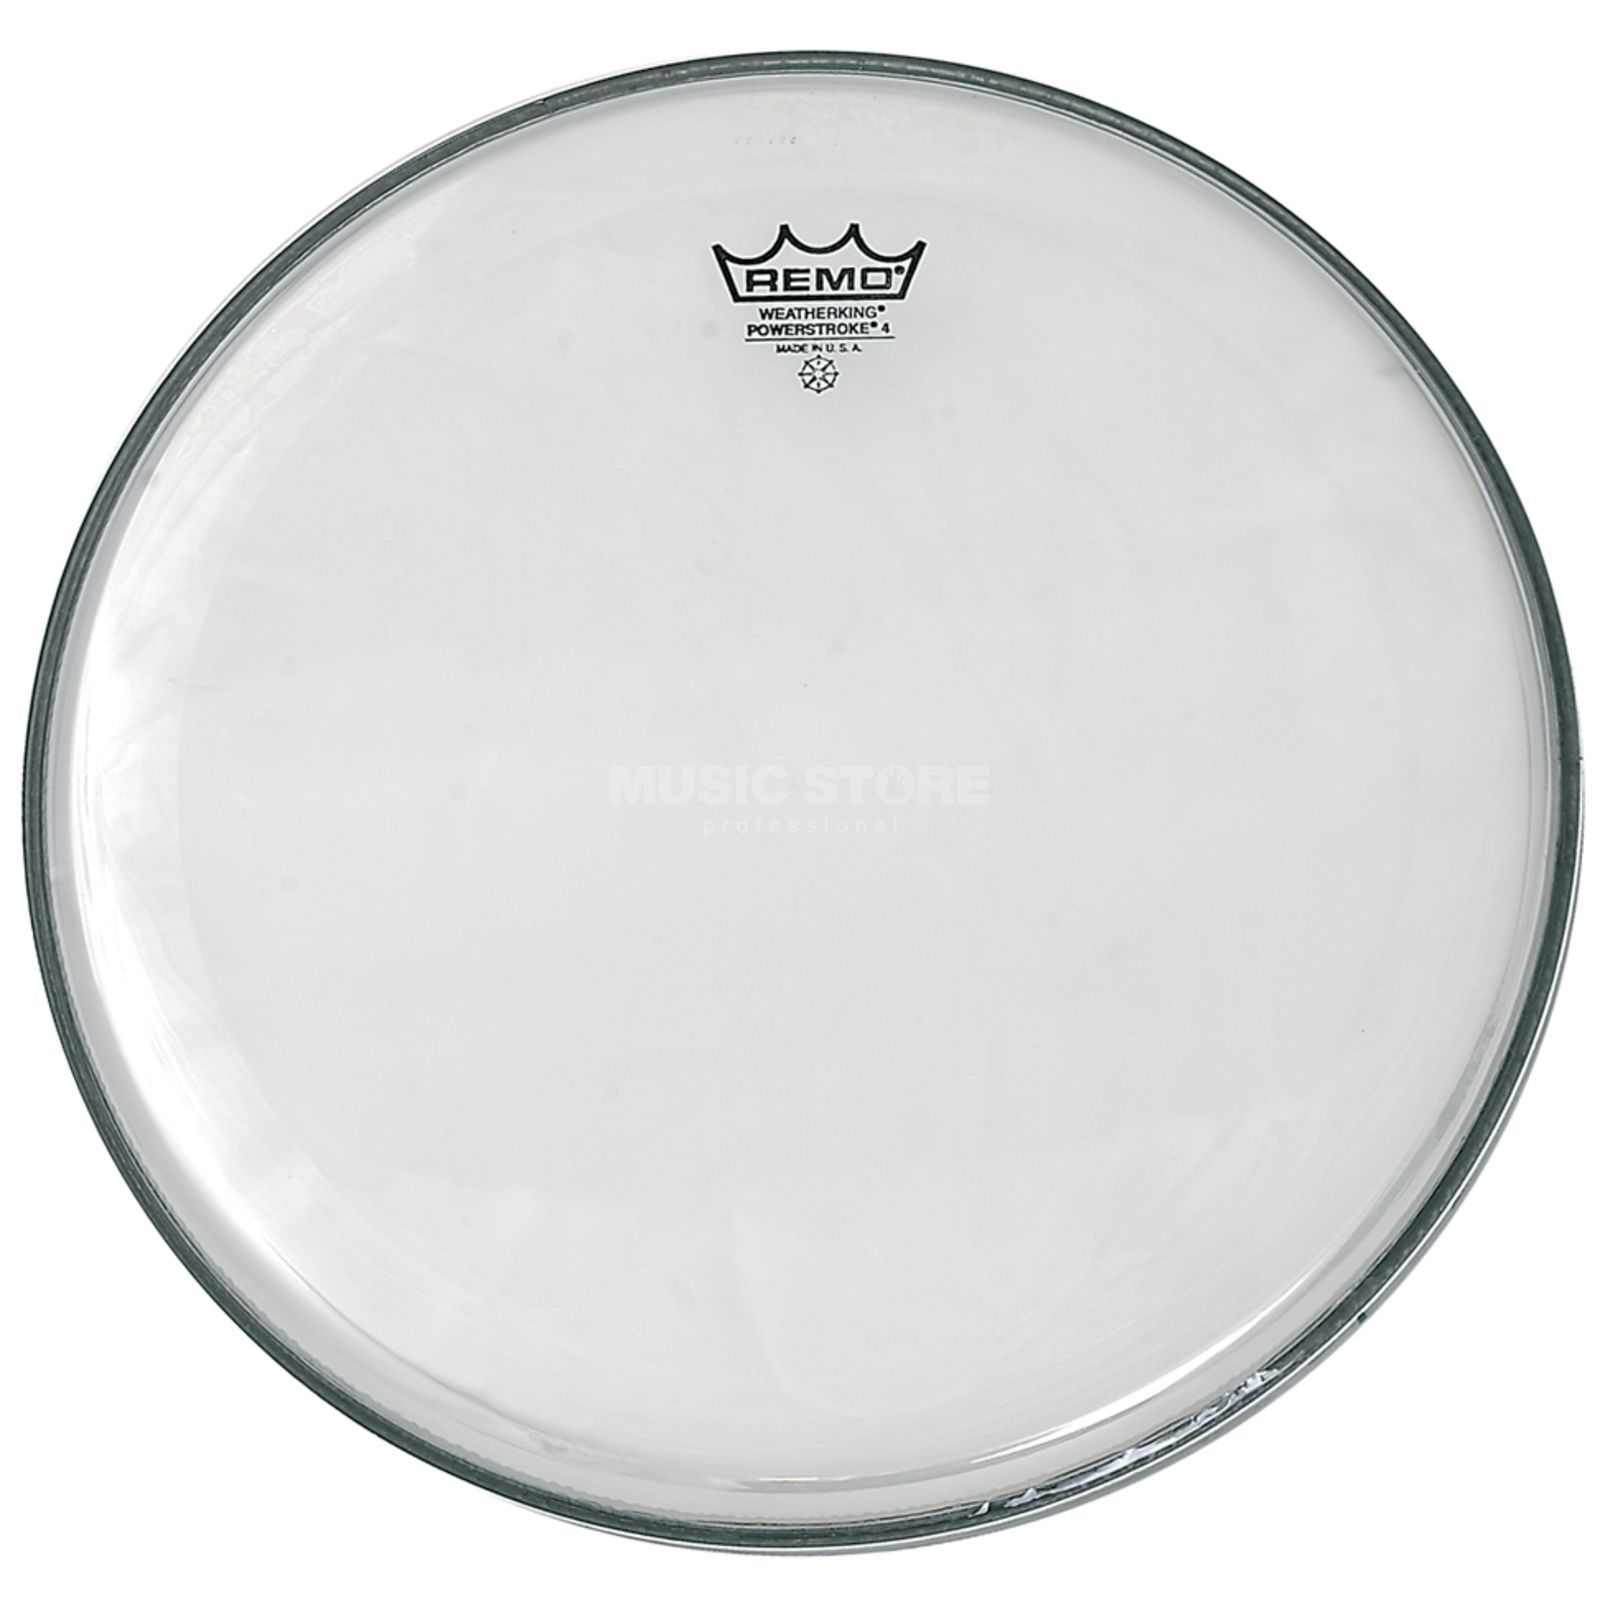 "Remo Powerstroke 4 Clear 14"", Tom + Snare Batter Produktbild"